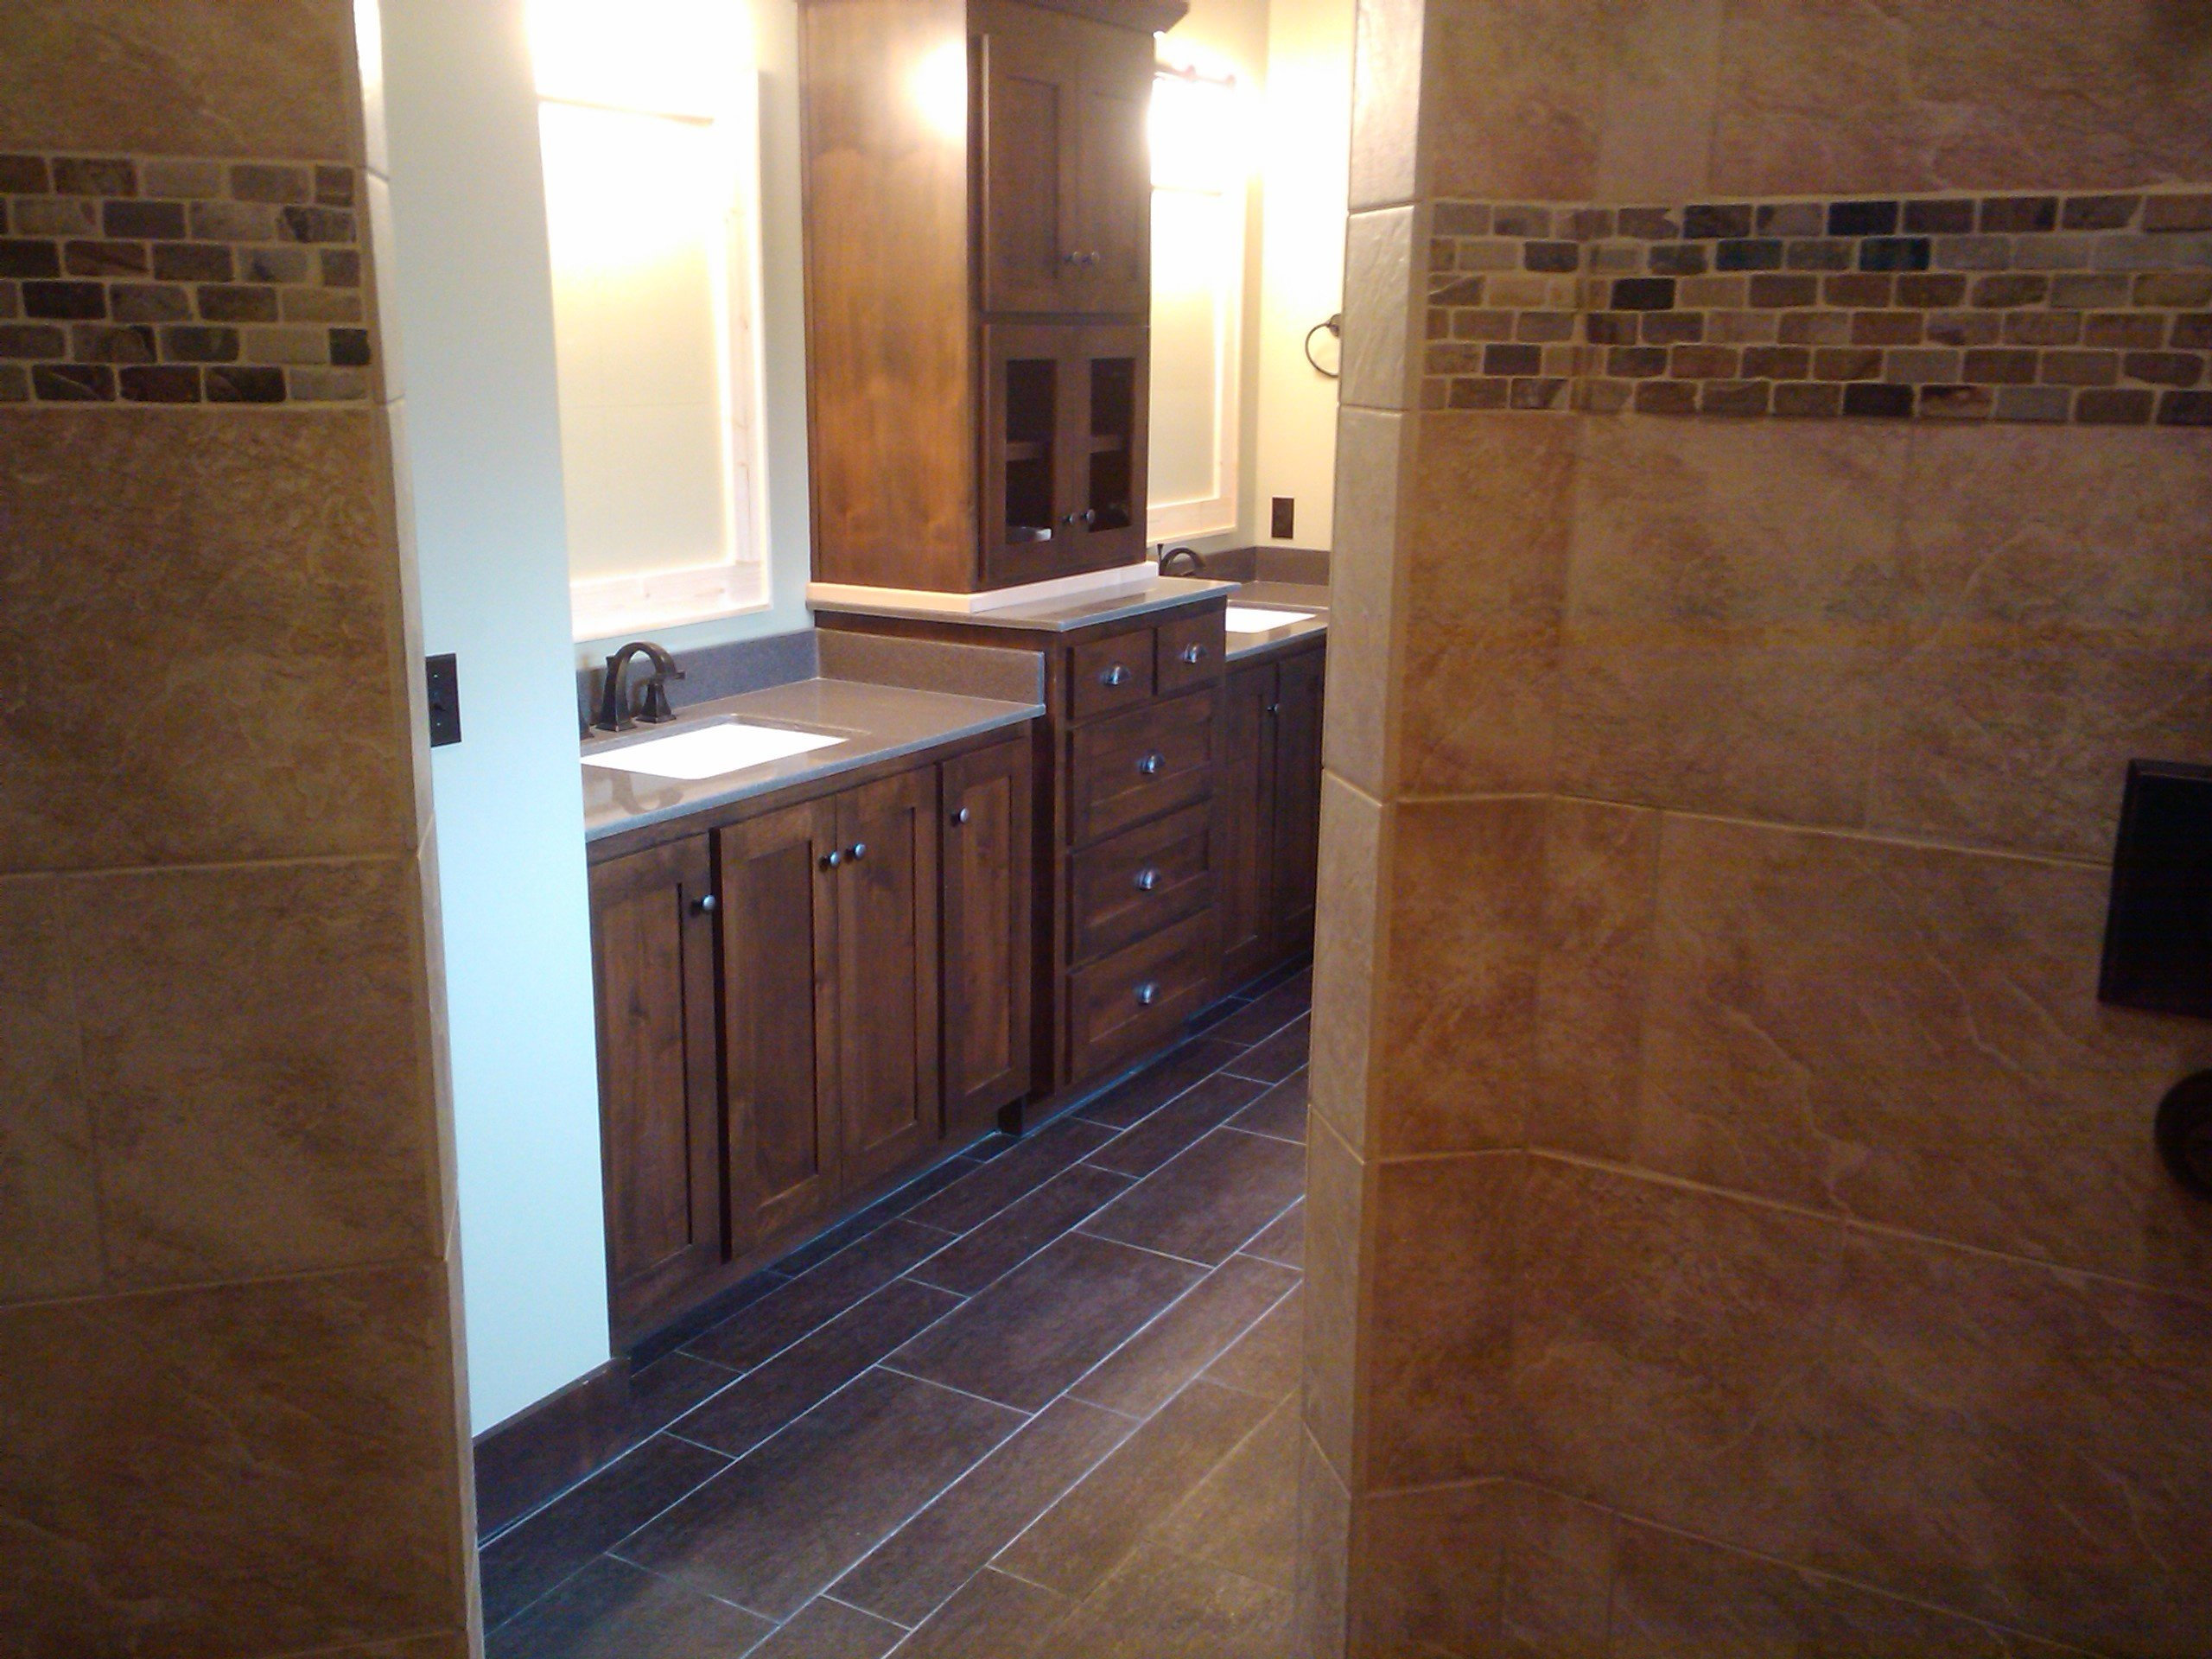 https://0901.nccdn.net/4_2/000/000/011/751/Post-renovation-cleanig-bathroom1236clean-2560x1920.jpg